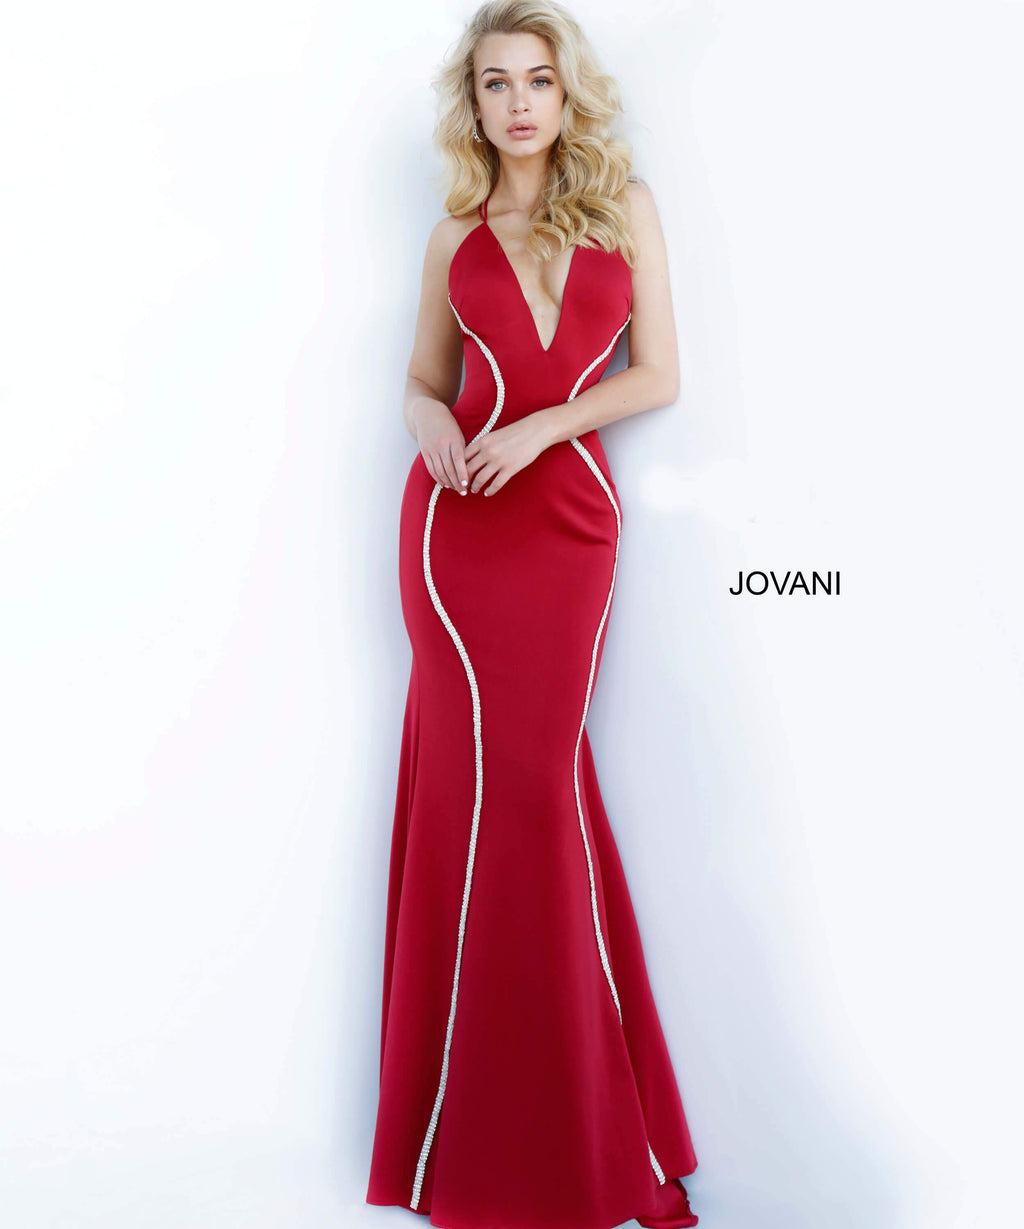 JOVANI 3040 Criss Cross Back Fitted Evening Dress